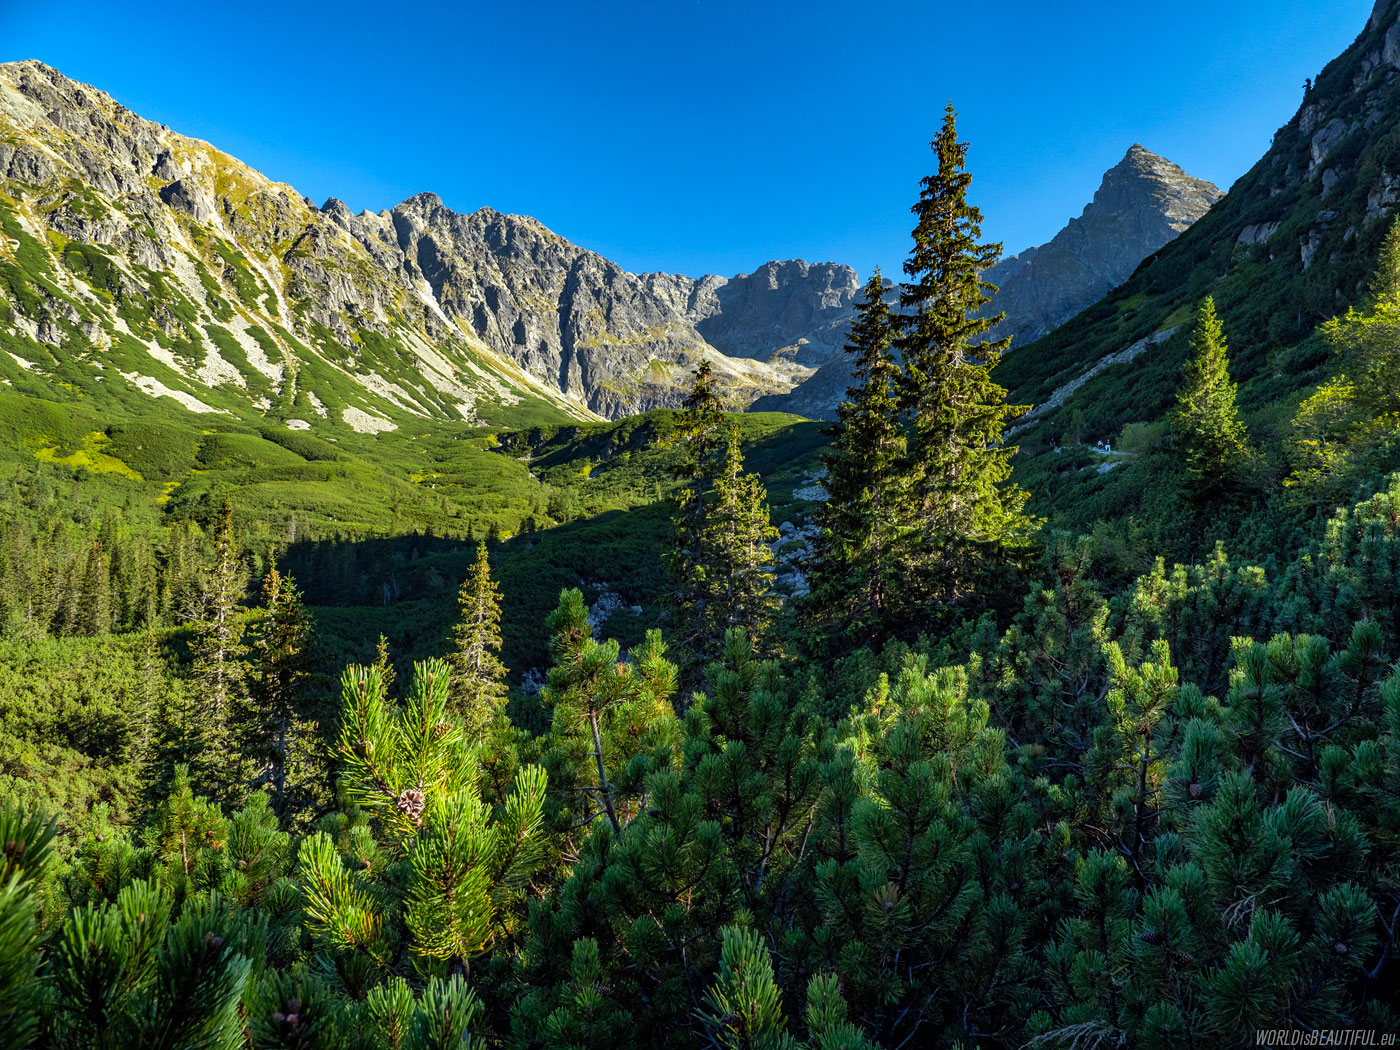 Postcard from the Tatra Mountains